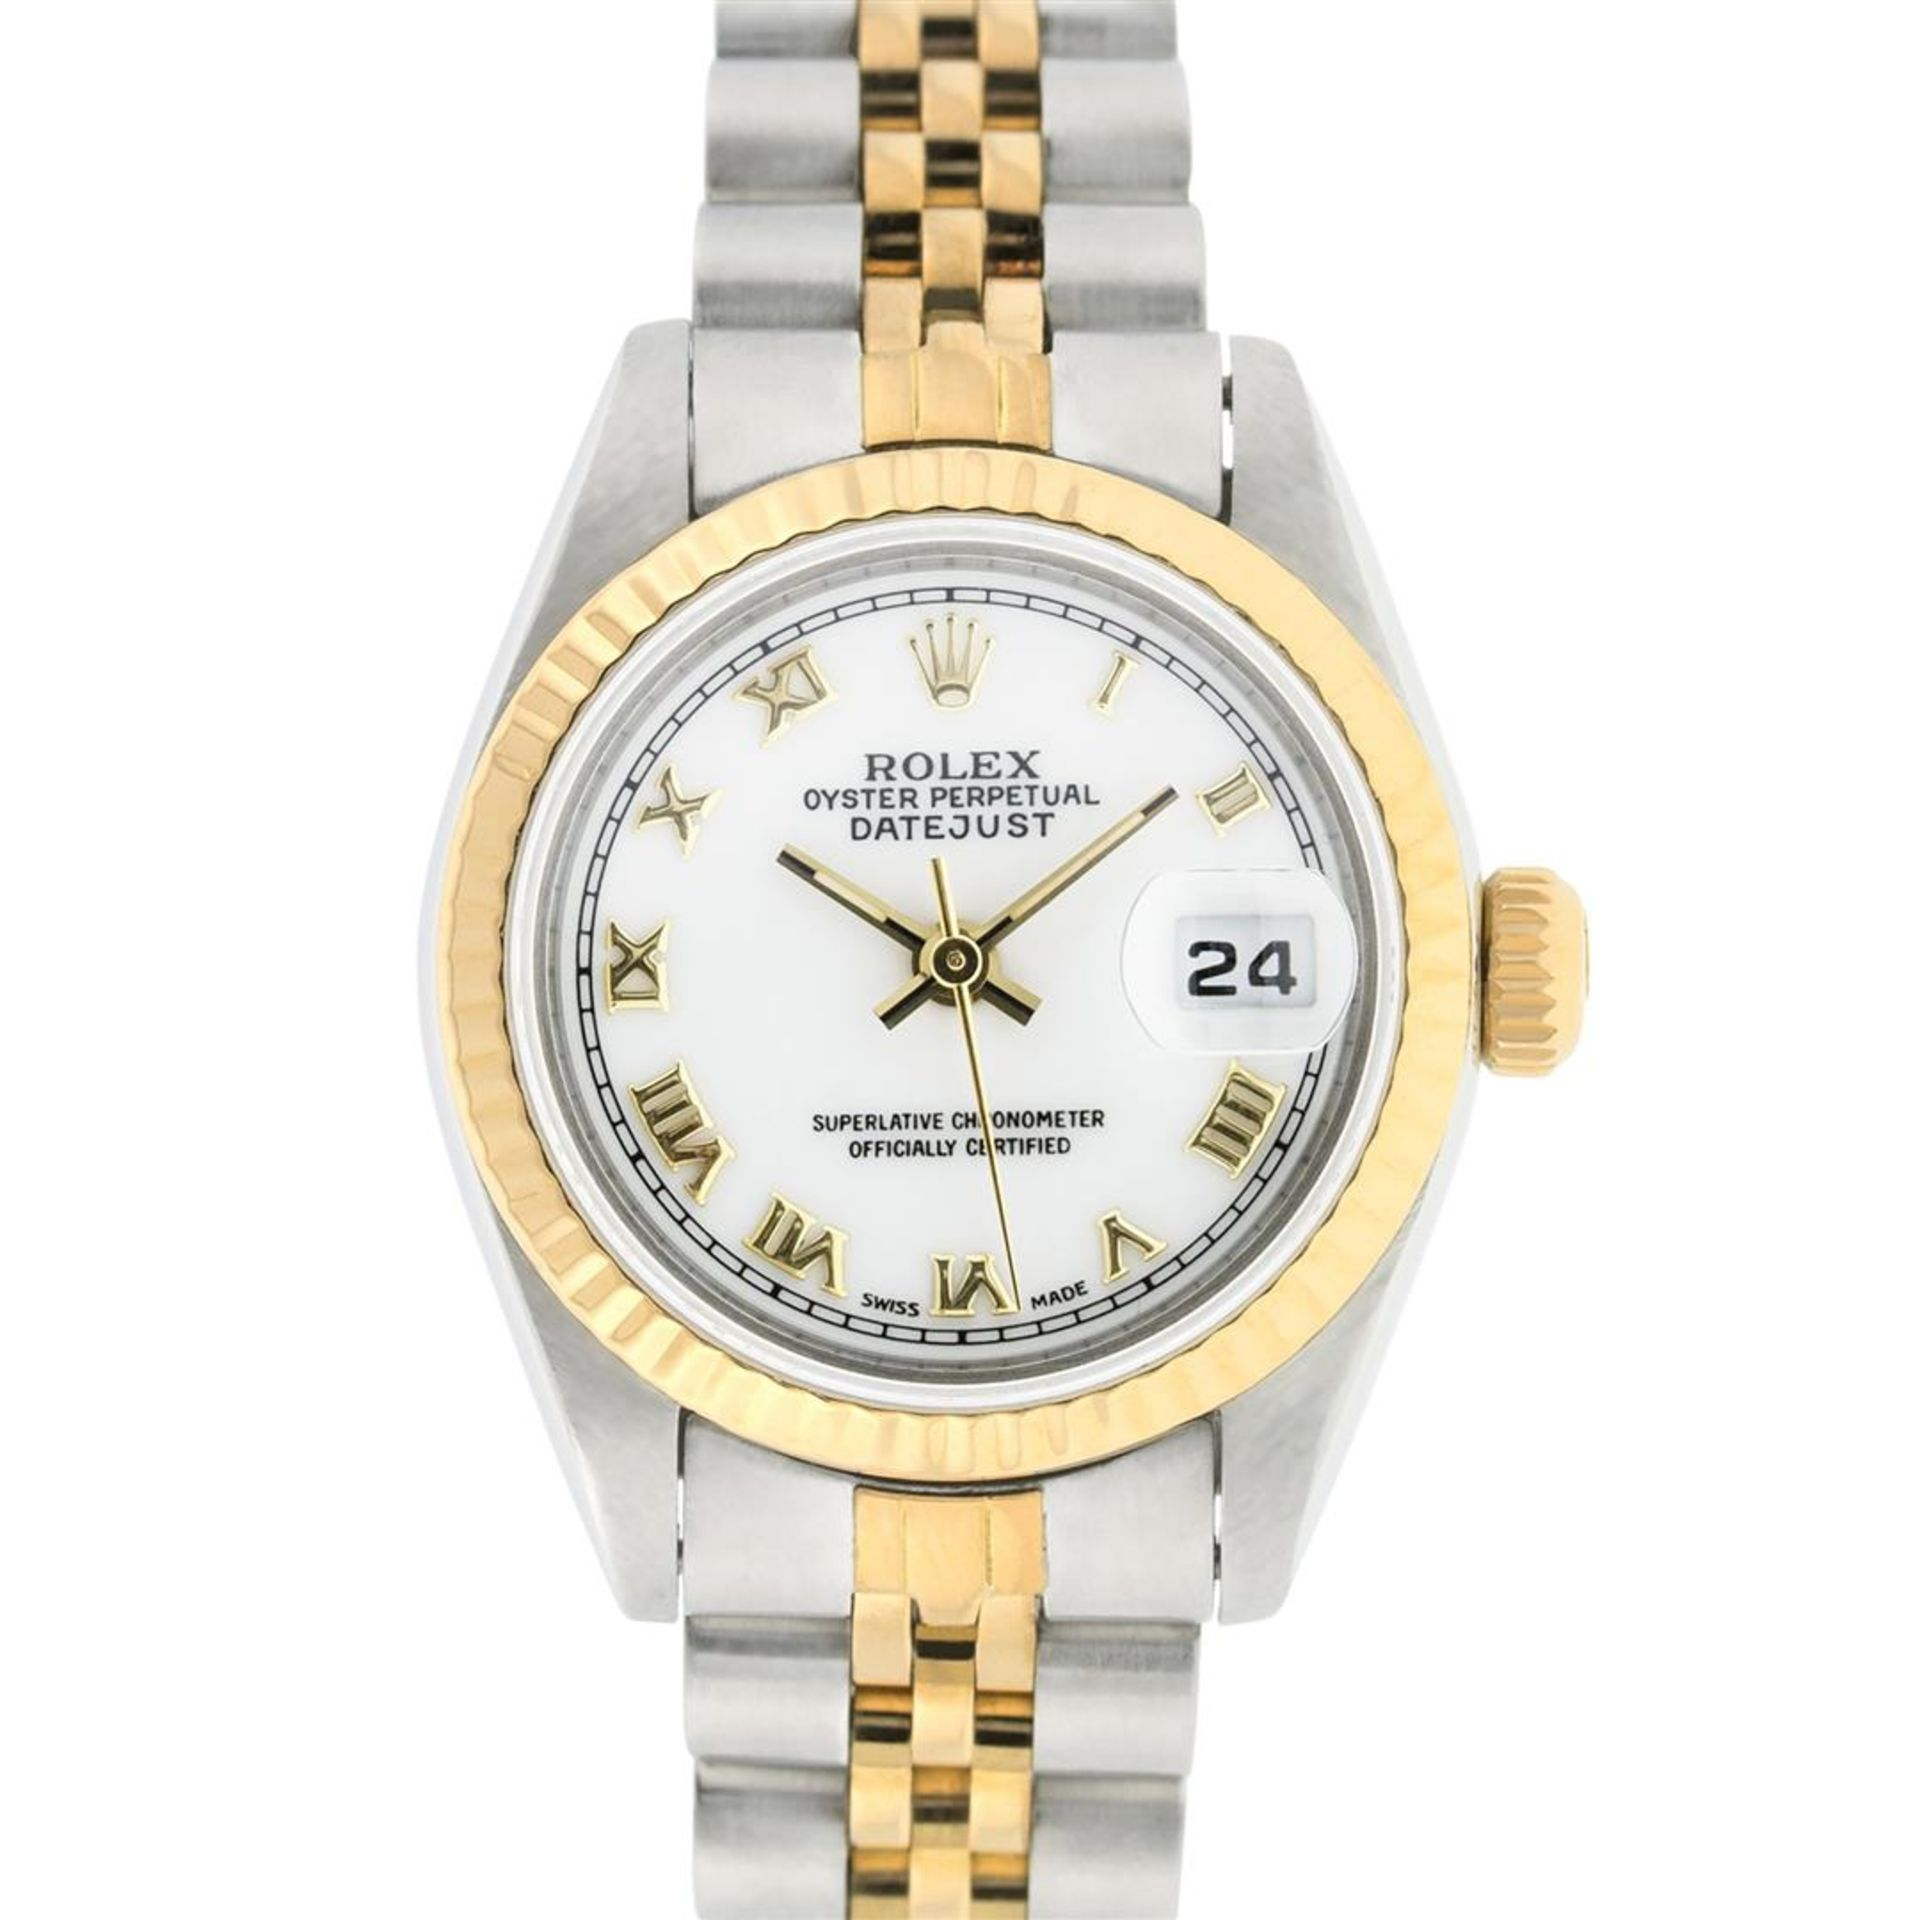 Rolex Ladies 2 Tone White Roman 26MM Datejust Wristwatch - Image 2 of 8